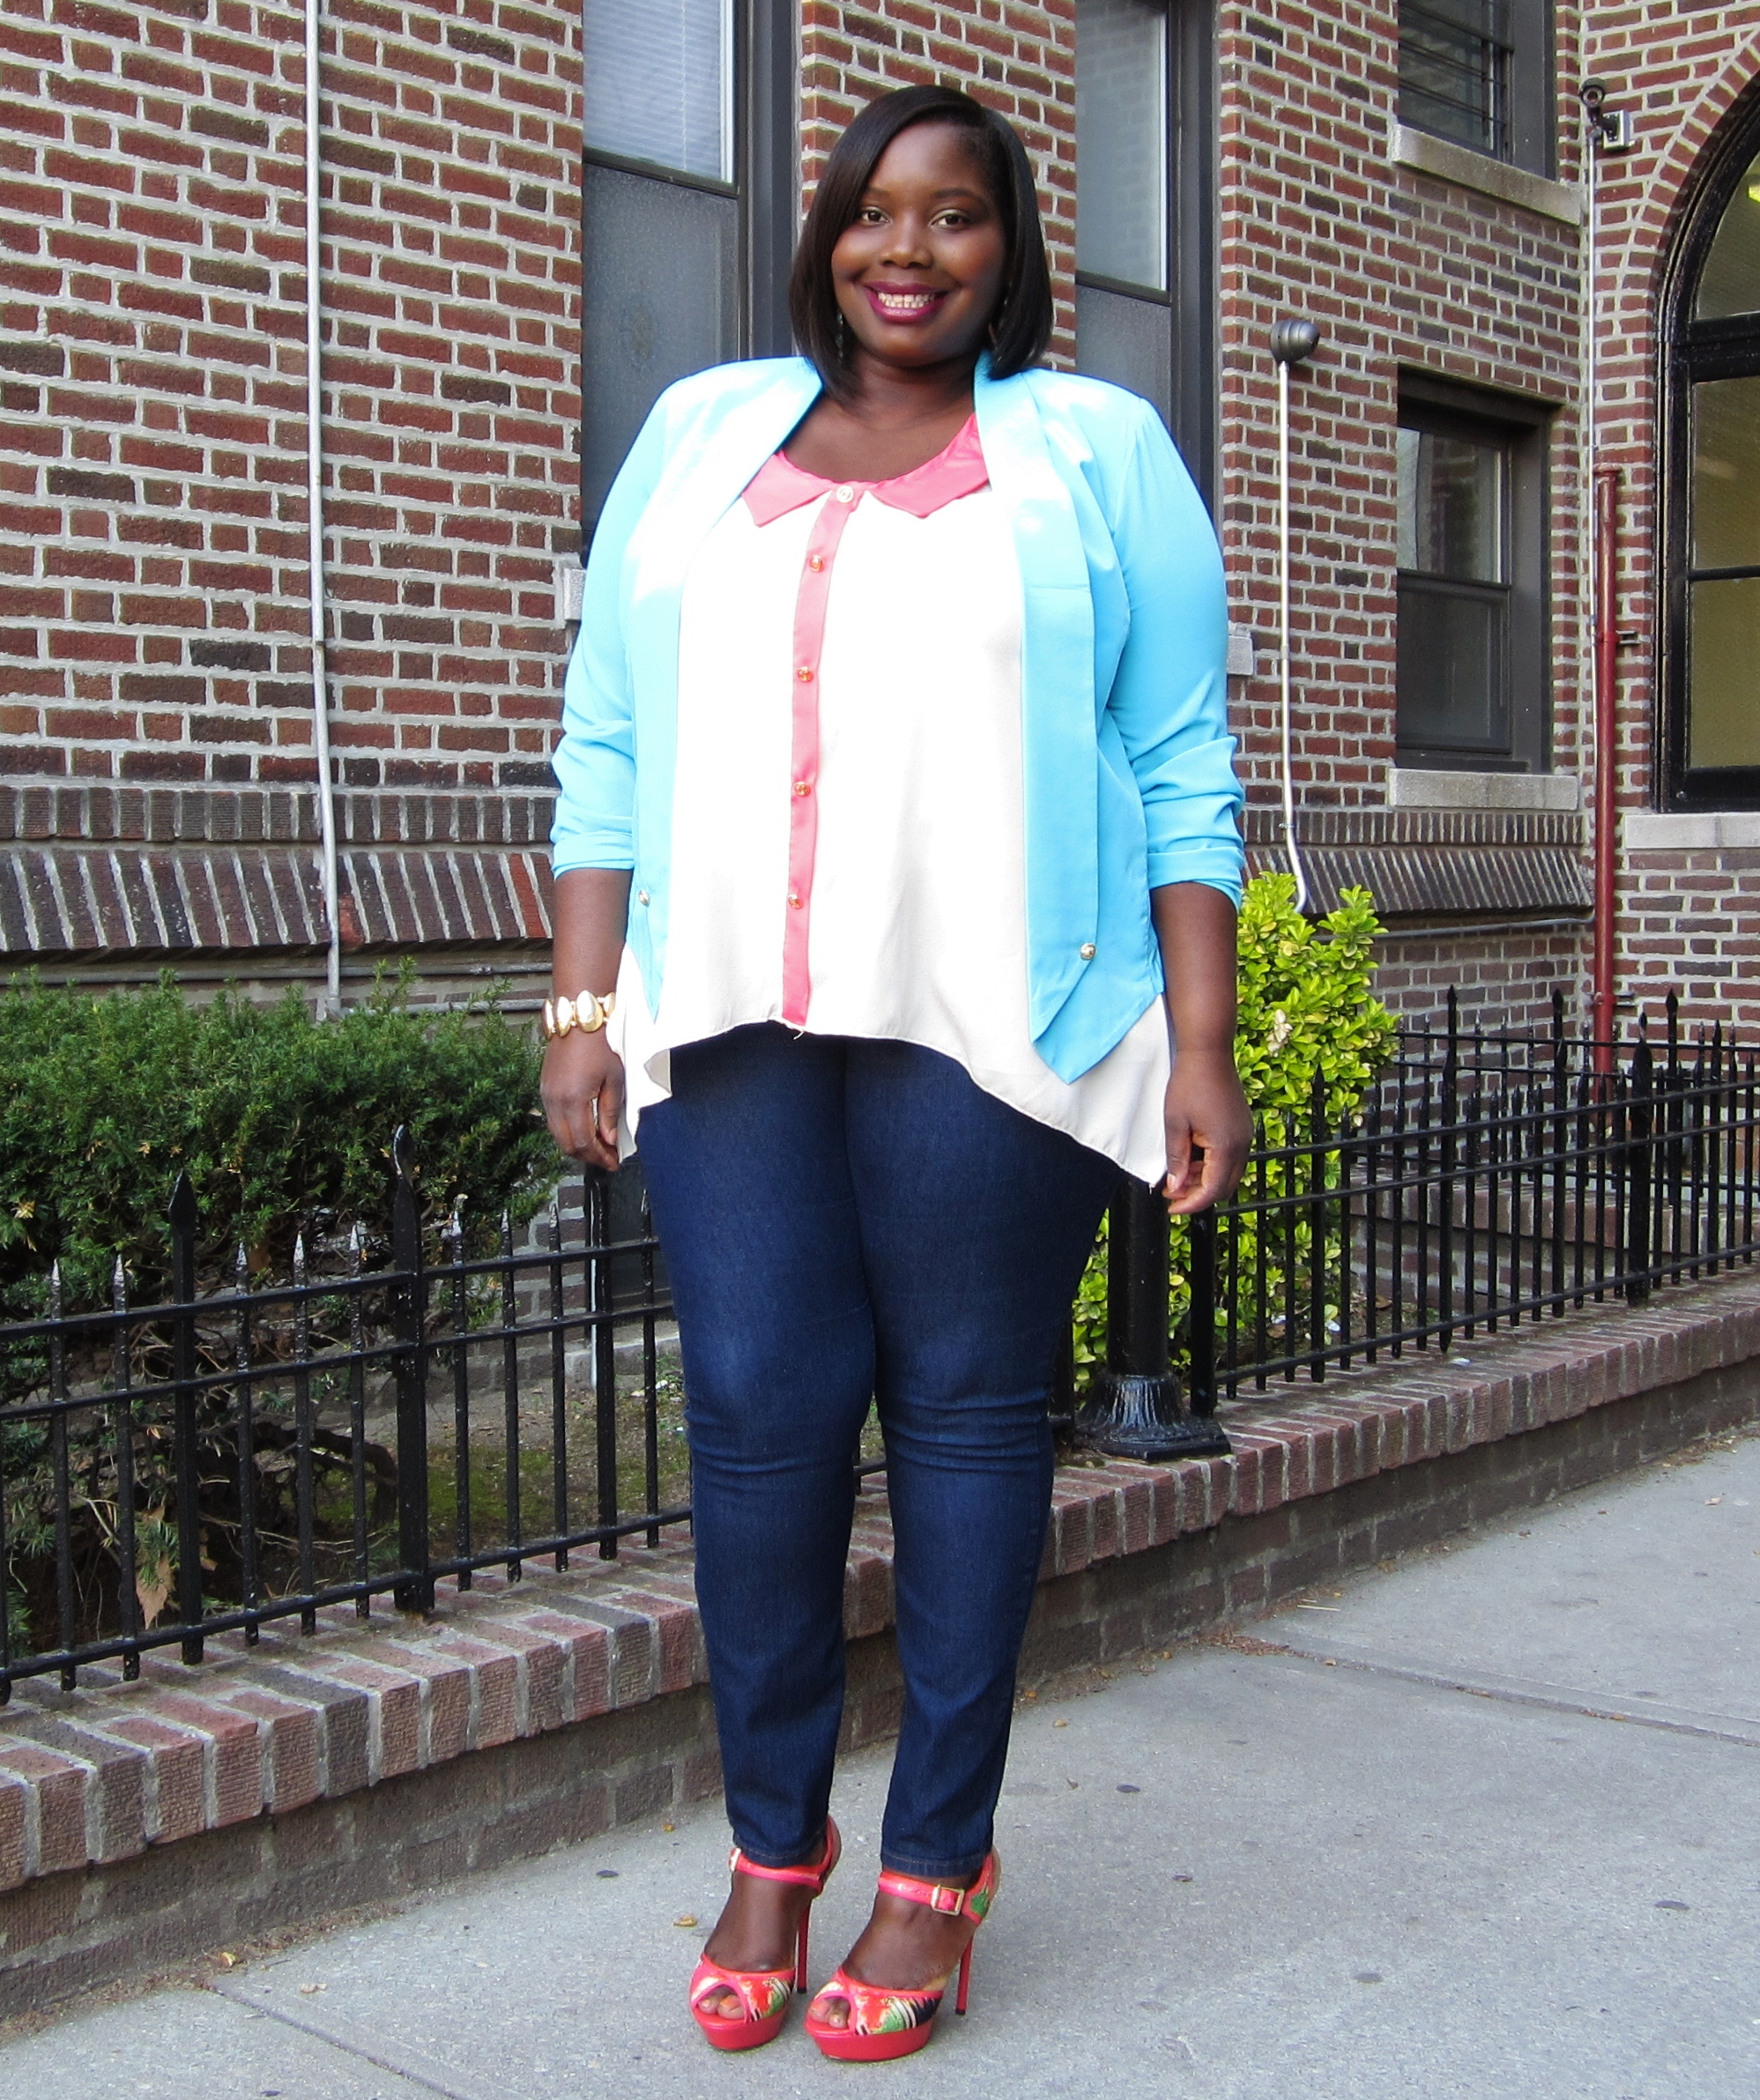 zulily plus size sale event featuring analogy | stylish curves